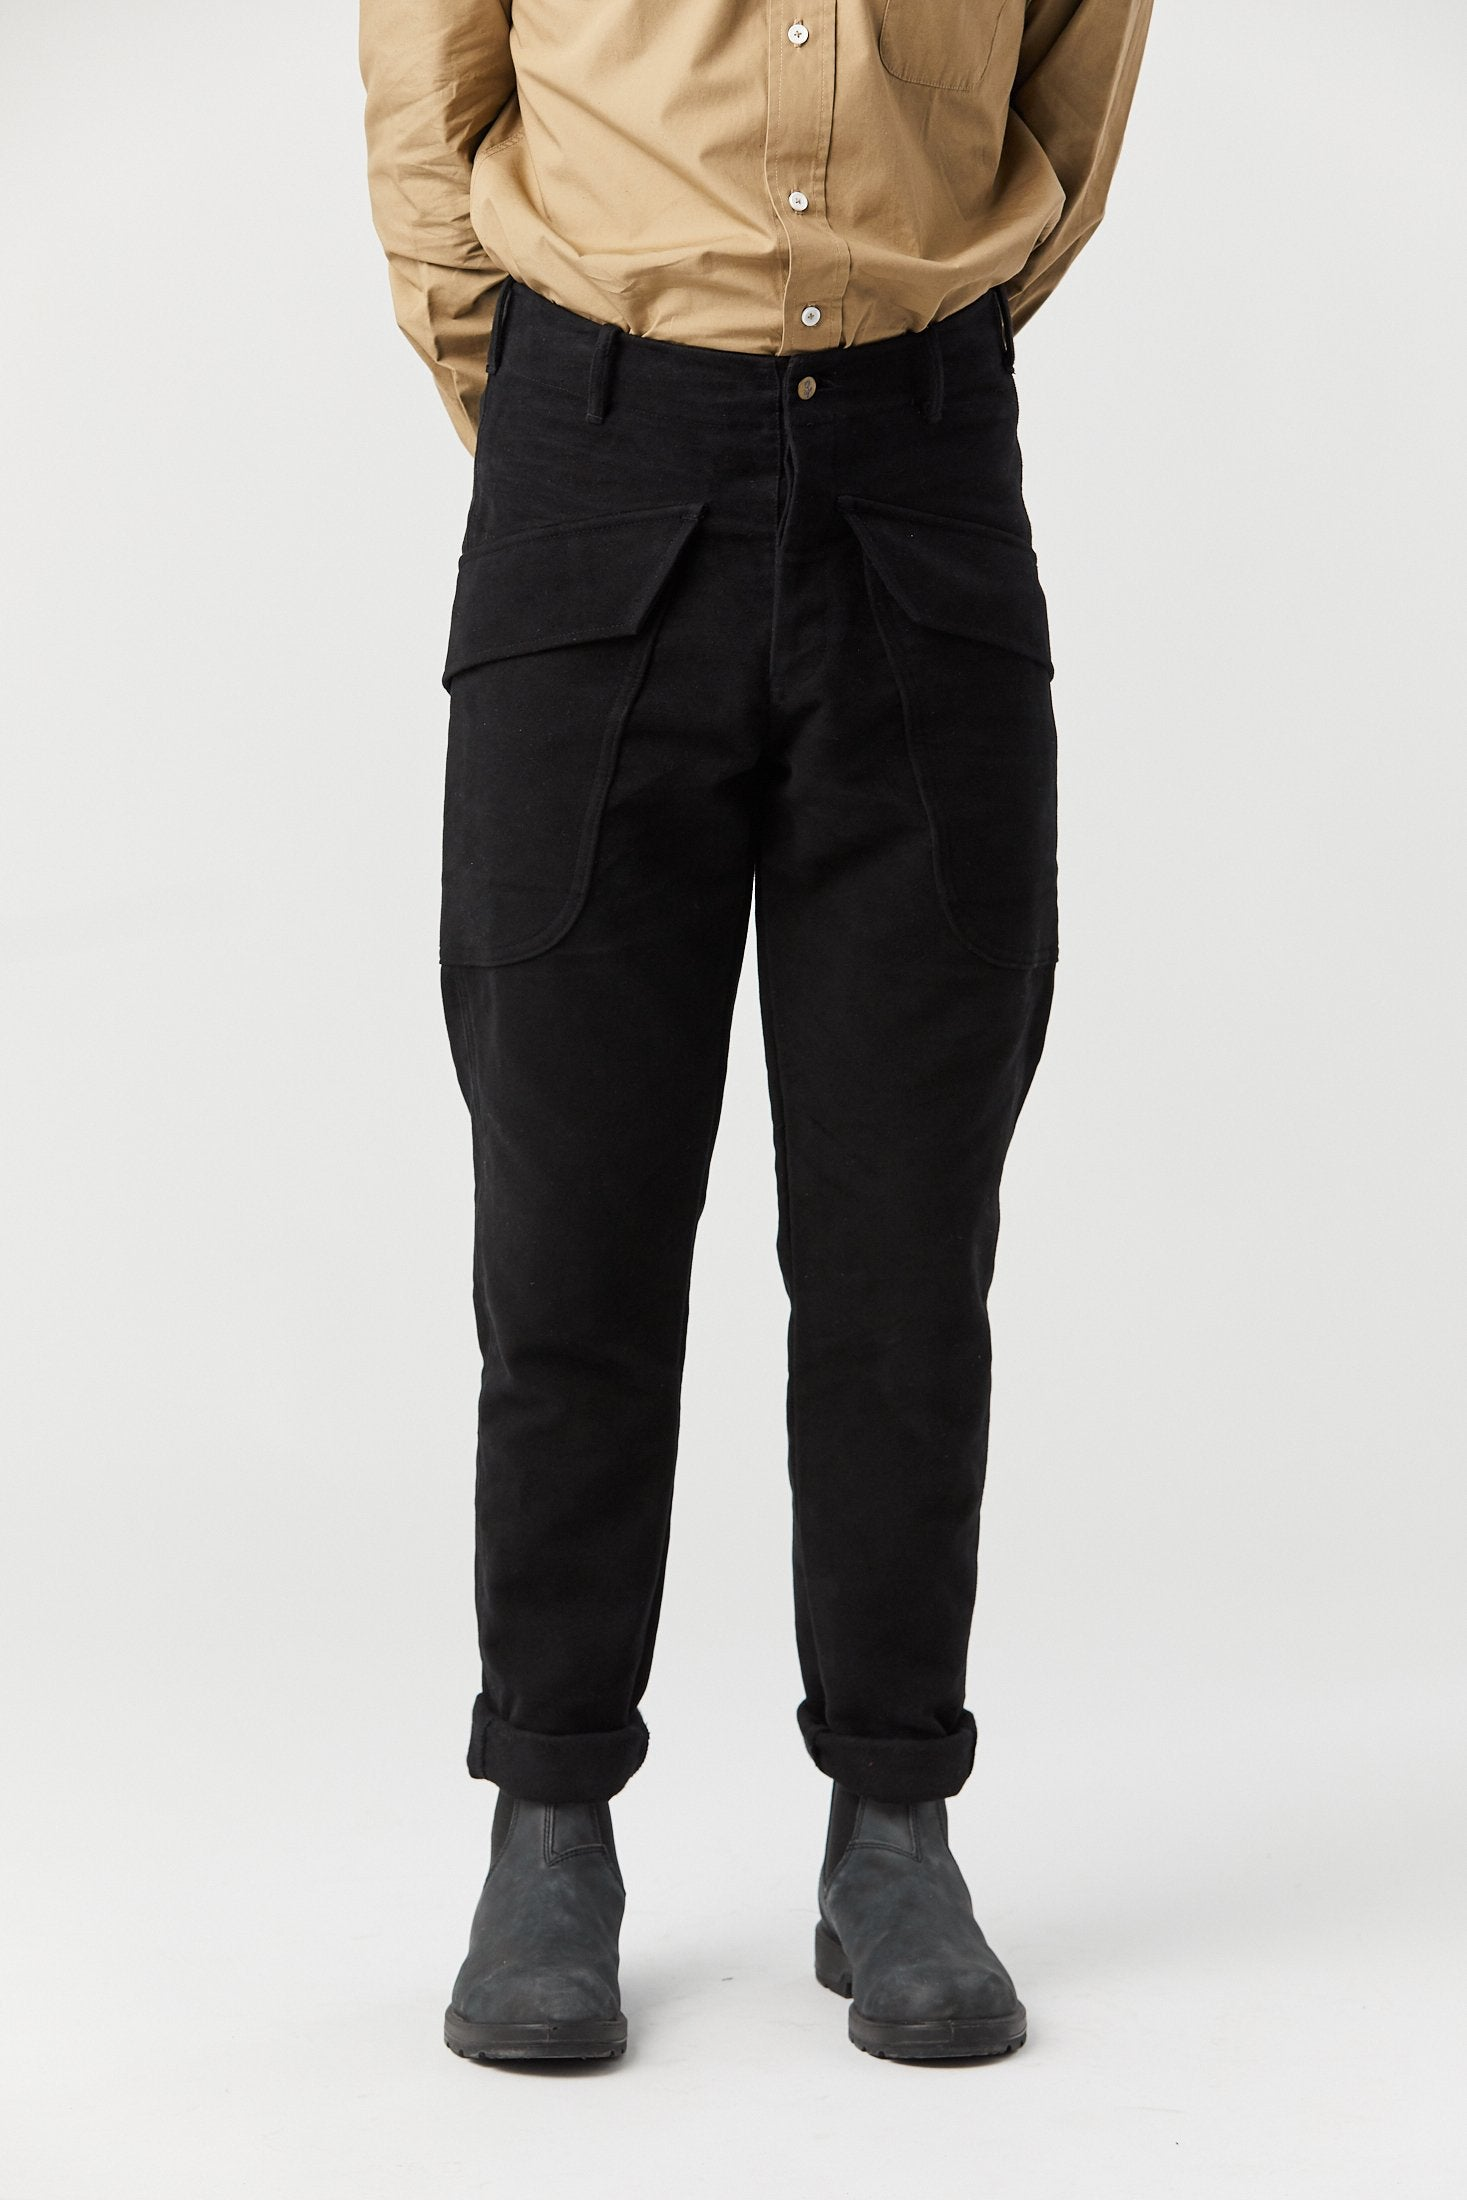 LODGE CARGO PANT IN BLACK - Fortune Goods